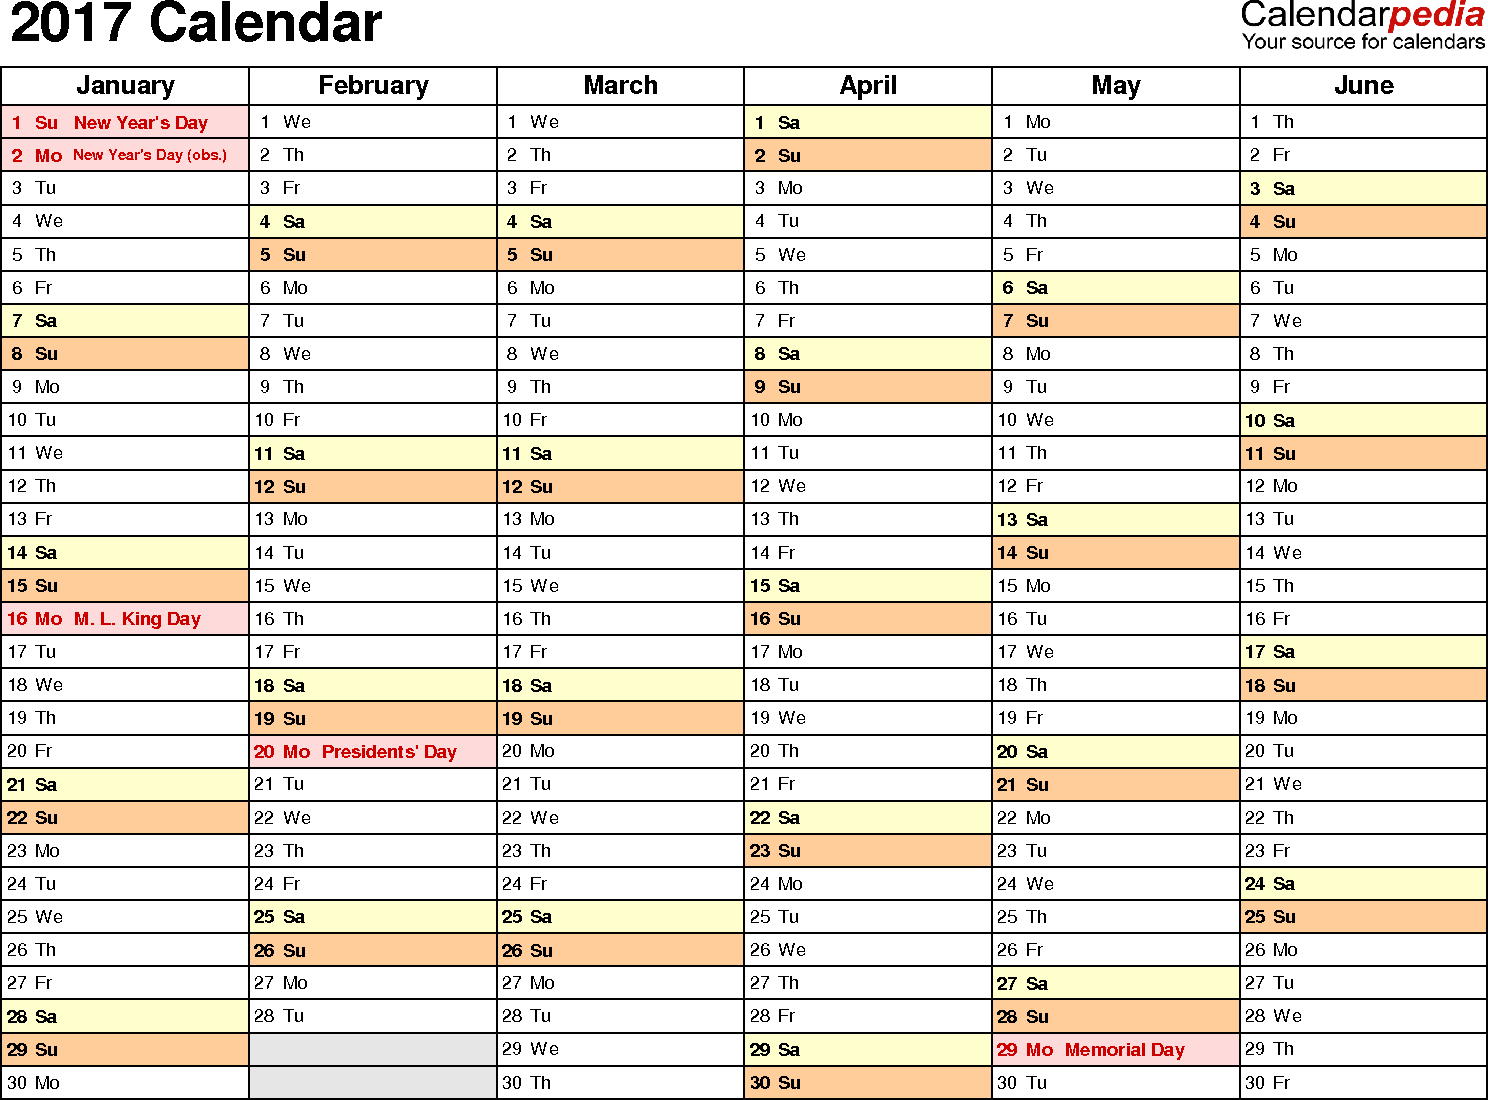 Ediblewildsus  Outstanding  Calendar  Download  Free Printable Excel Templates Xls With Gorgeous Template   Calendar For Excel Months Horizontally  Pages Landscape Orientation With Captivating Construction Timeline Template Excel Also Xml Mapping Excel In Addition Excel In The Cloud And Excel Vba Vlookup Function As Well As How To Calculate Growth Percentage In Excel Additionally Vba Excel Colorindex From Calendarpediacom With Ediblewildsus  Gorgeous  Calendar  Download  Free Printable Excel Templates Xls With Captivating Template   Calendar For Excel Months Horizontally  Pages Landscape Orientation And Outstanding Construction Timeline Template Excel Also Xml Mapping Excel In Addition Excel In The Cloud From Calendarpediacom